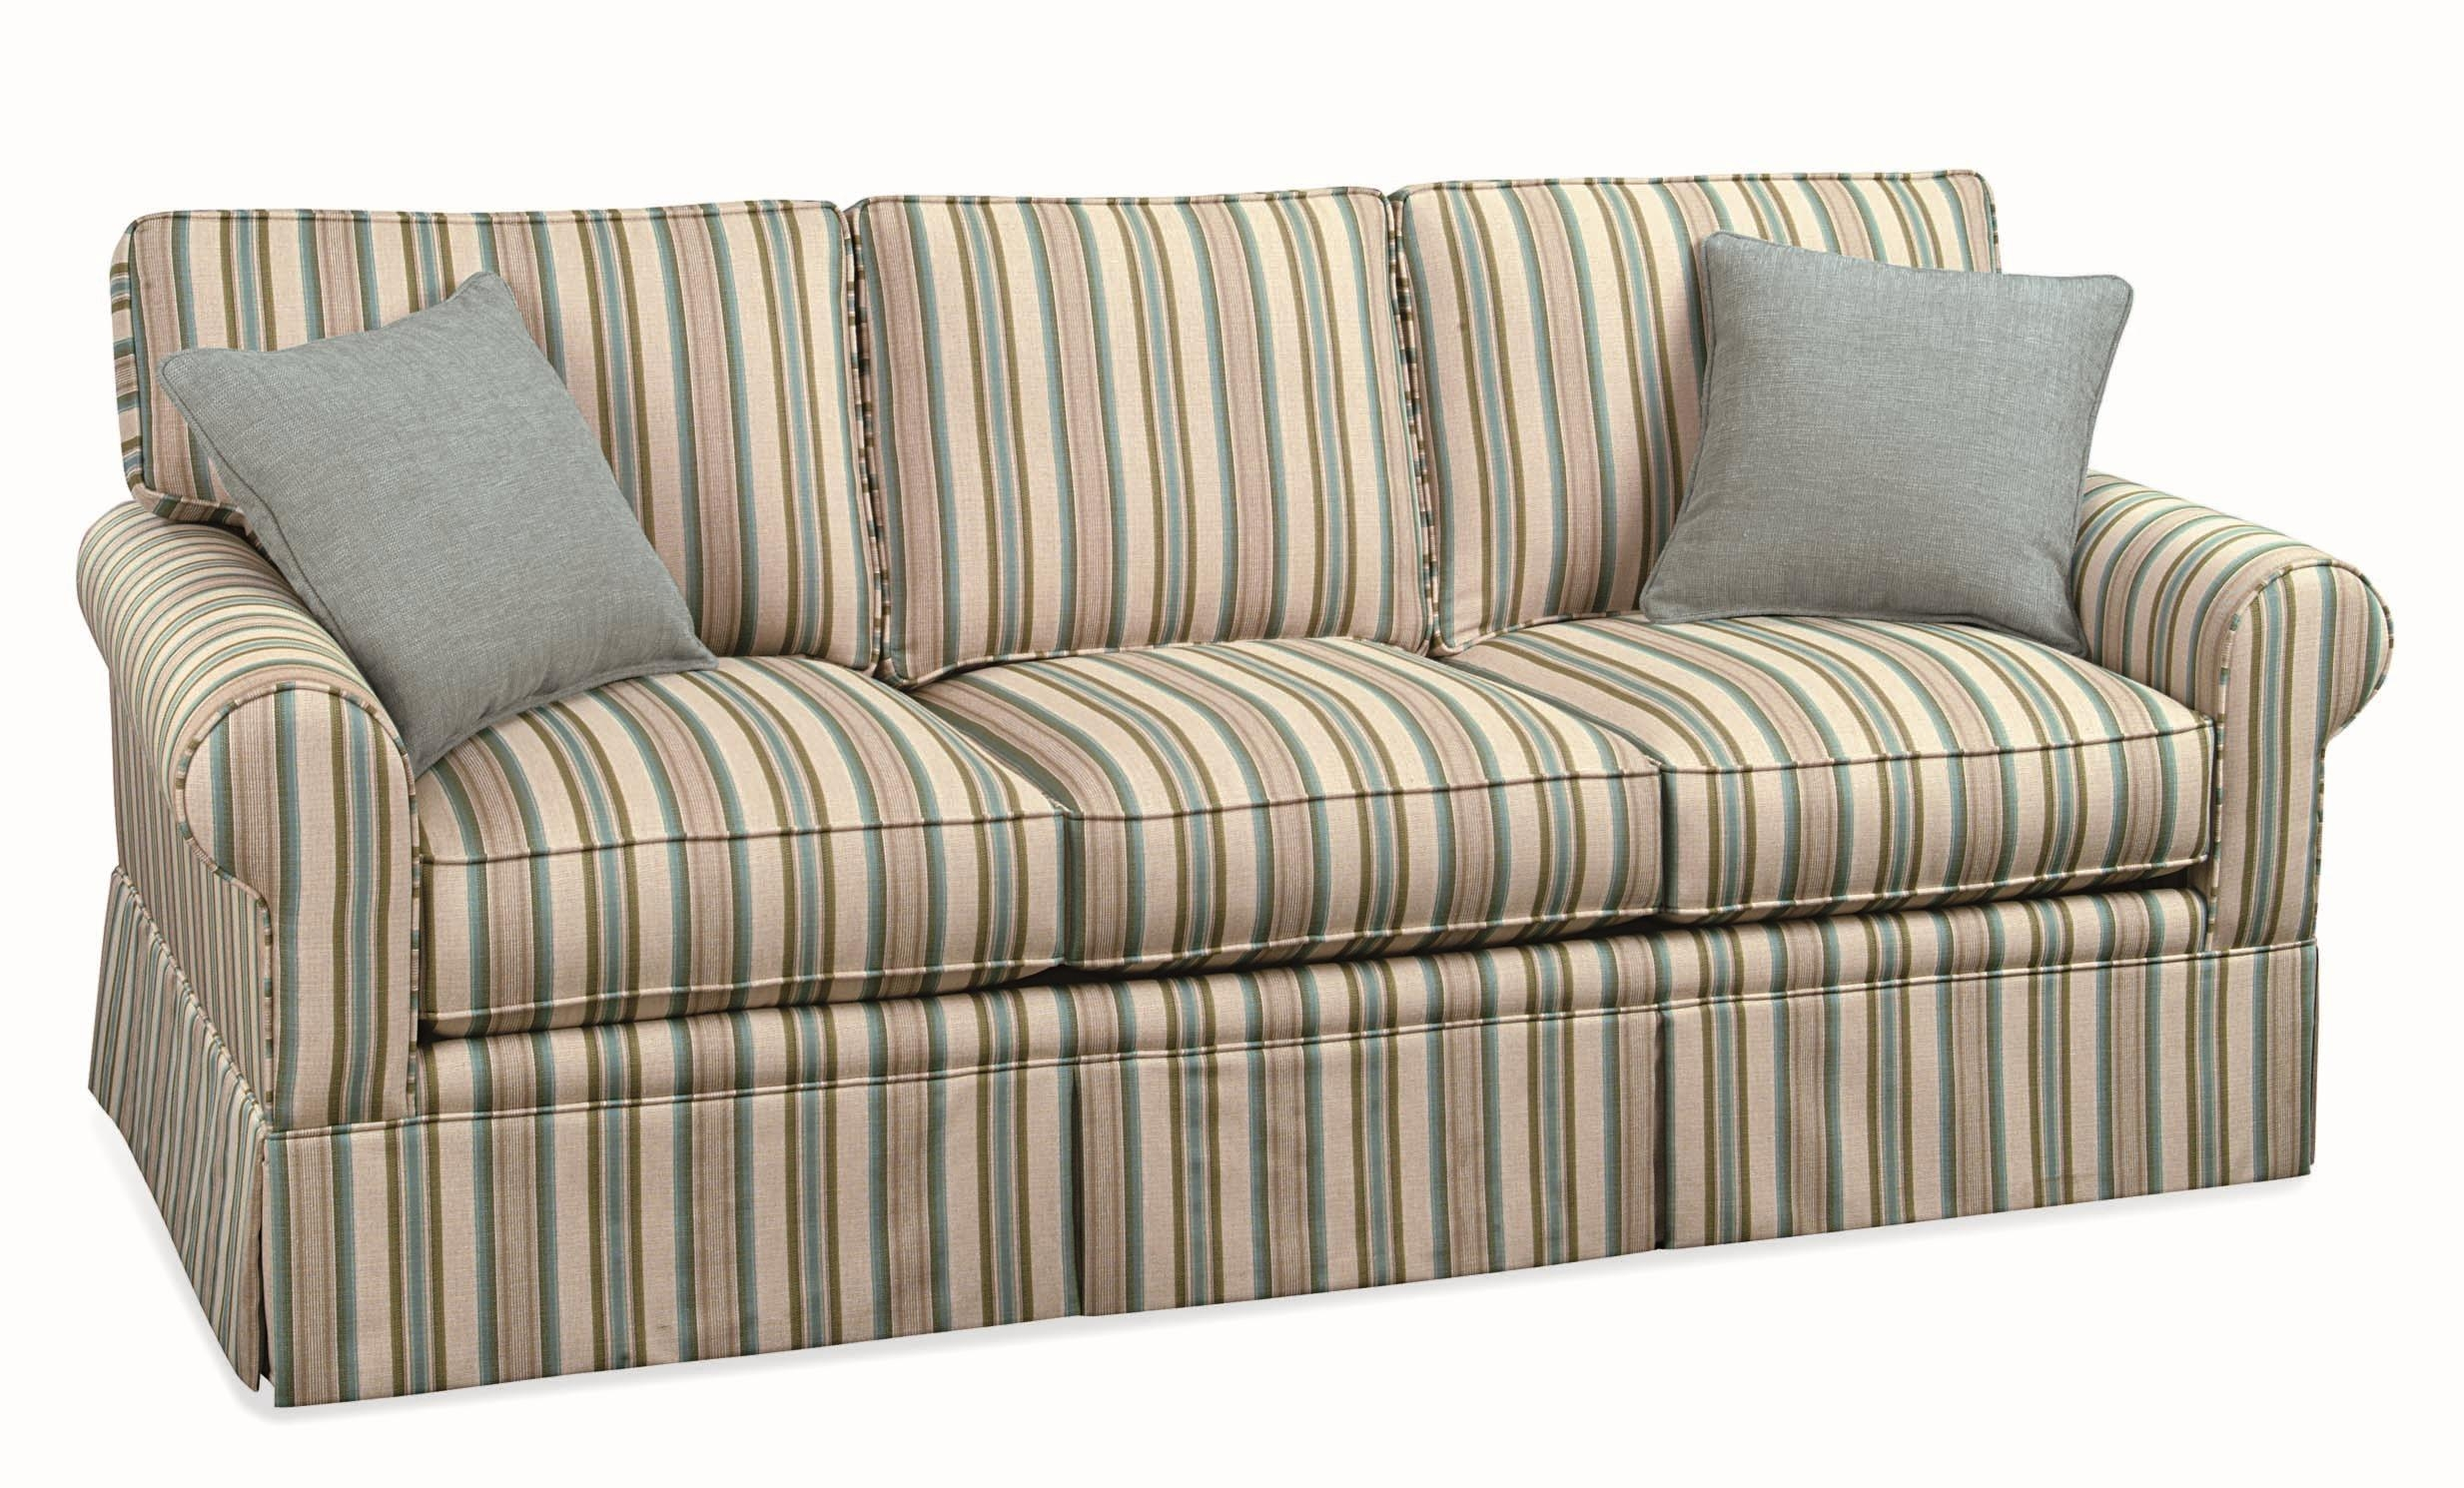 Braxton Culler Sofas & Accent Sofas Store – Dealer Locator With Regard To Braxton Sofas (View 12 of 20)